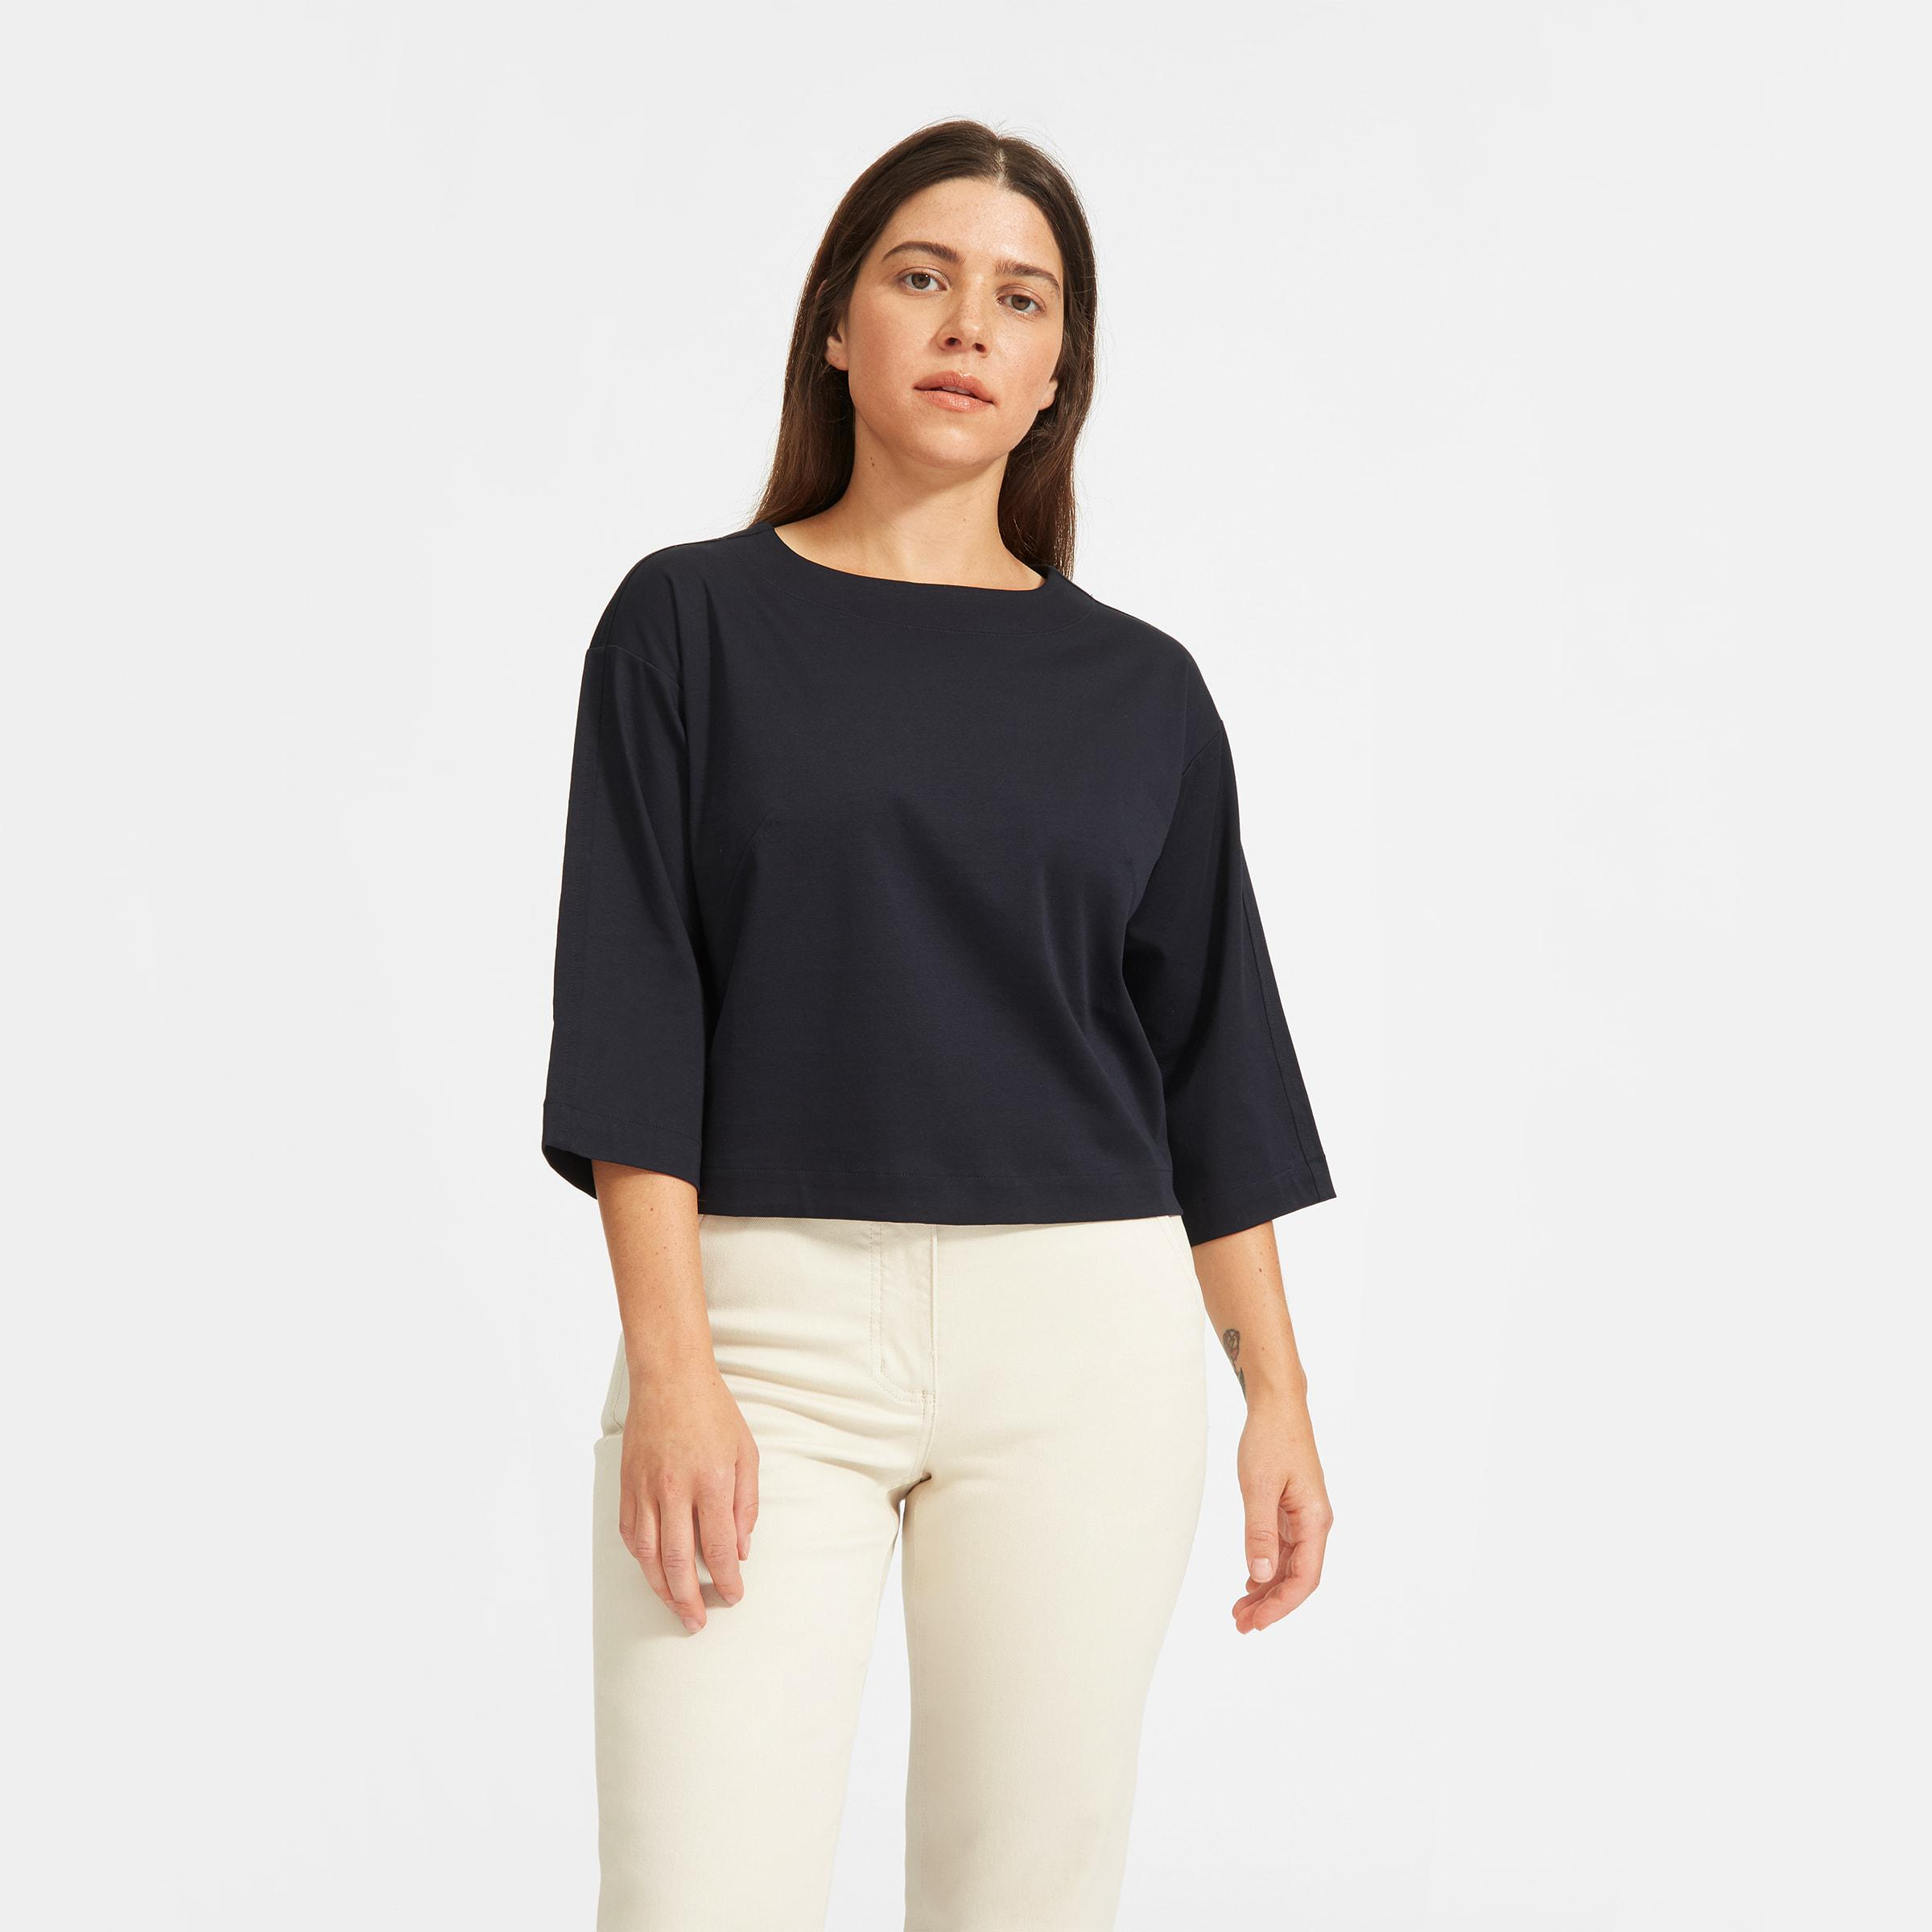 The Luxe Cotton Crop Tee